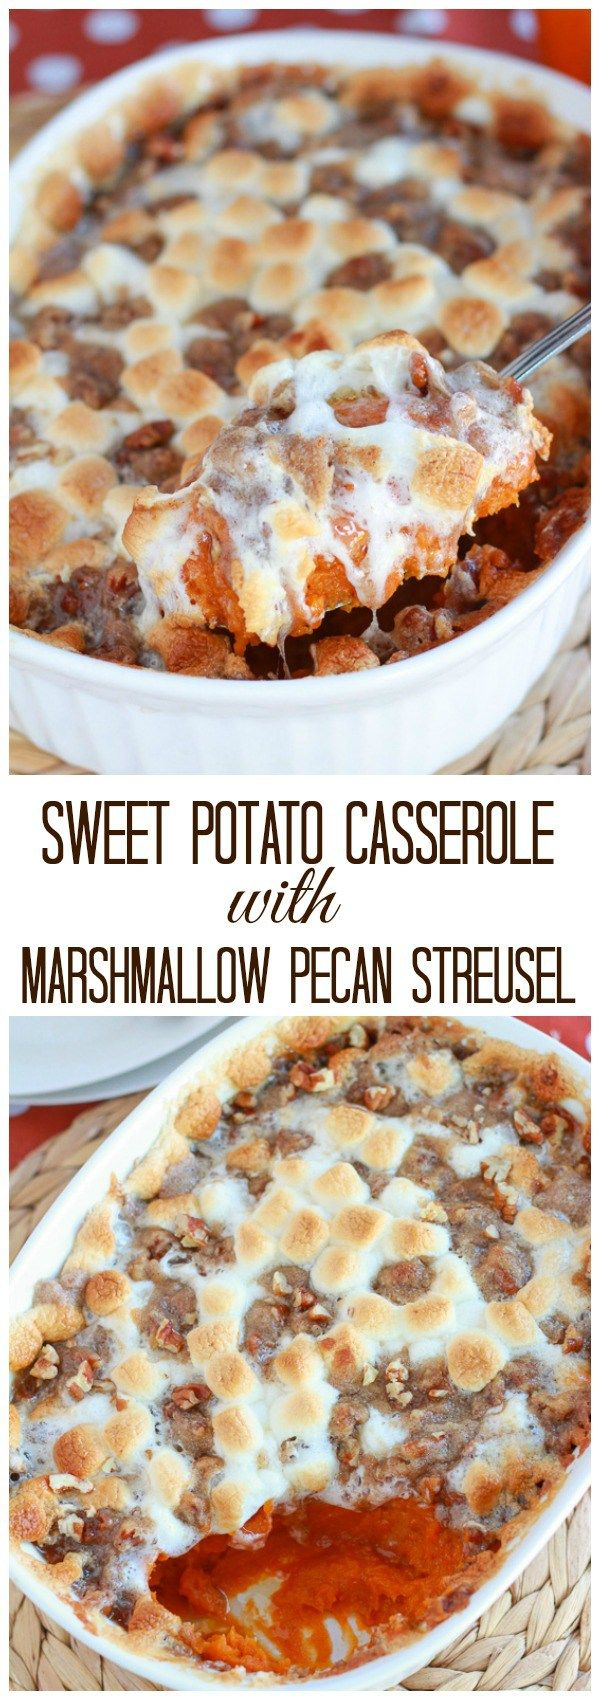 Sweet Potato Casserole with Marshmallow Pecan Streusel